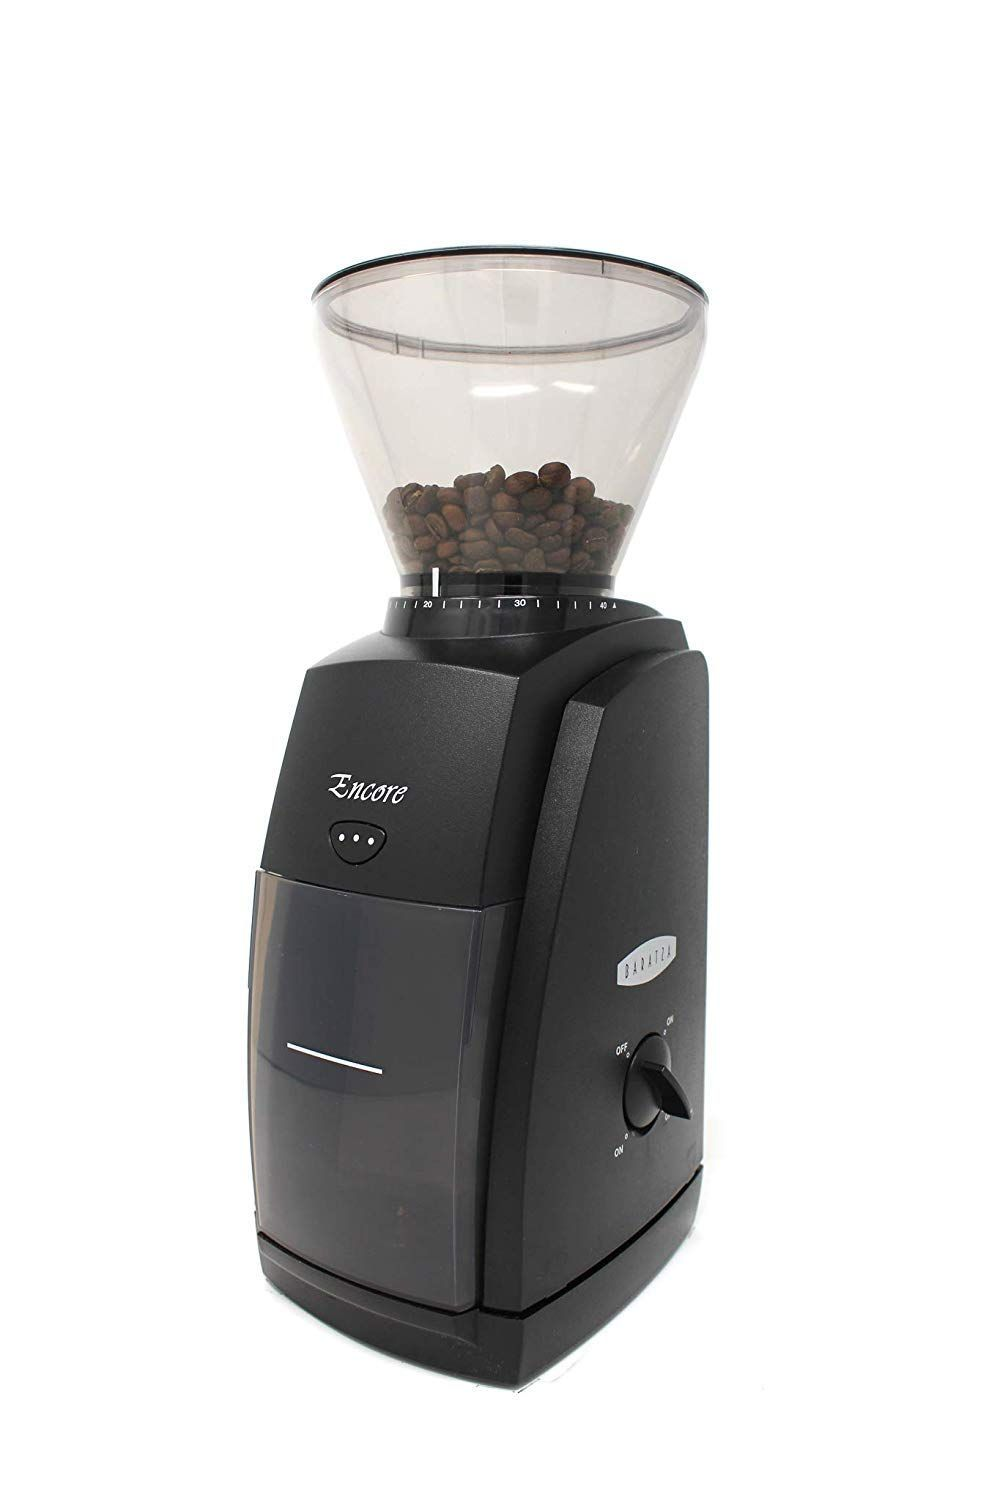 pour over coffee grinder